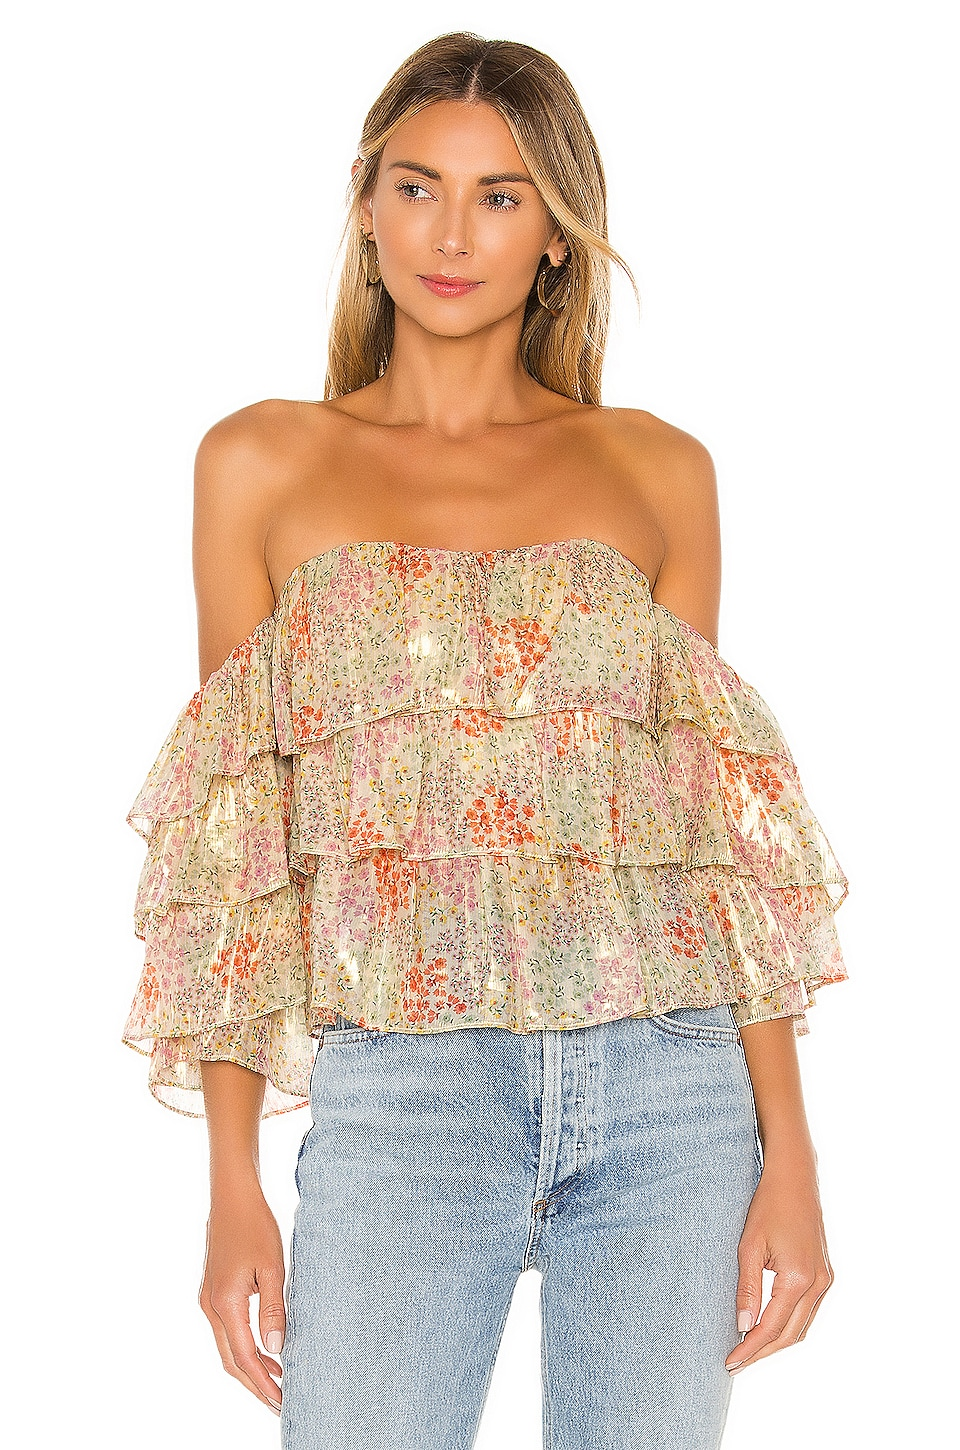 Lovers + Friends Ocean Eyes Top in Lurex Floral